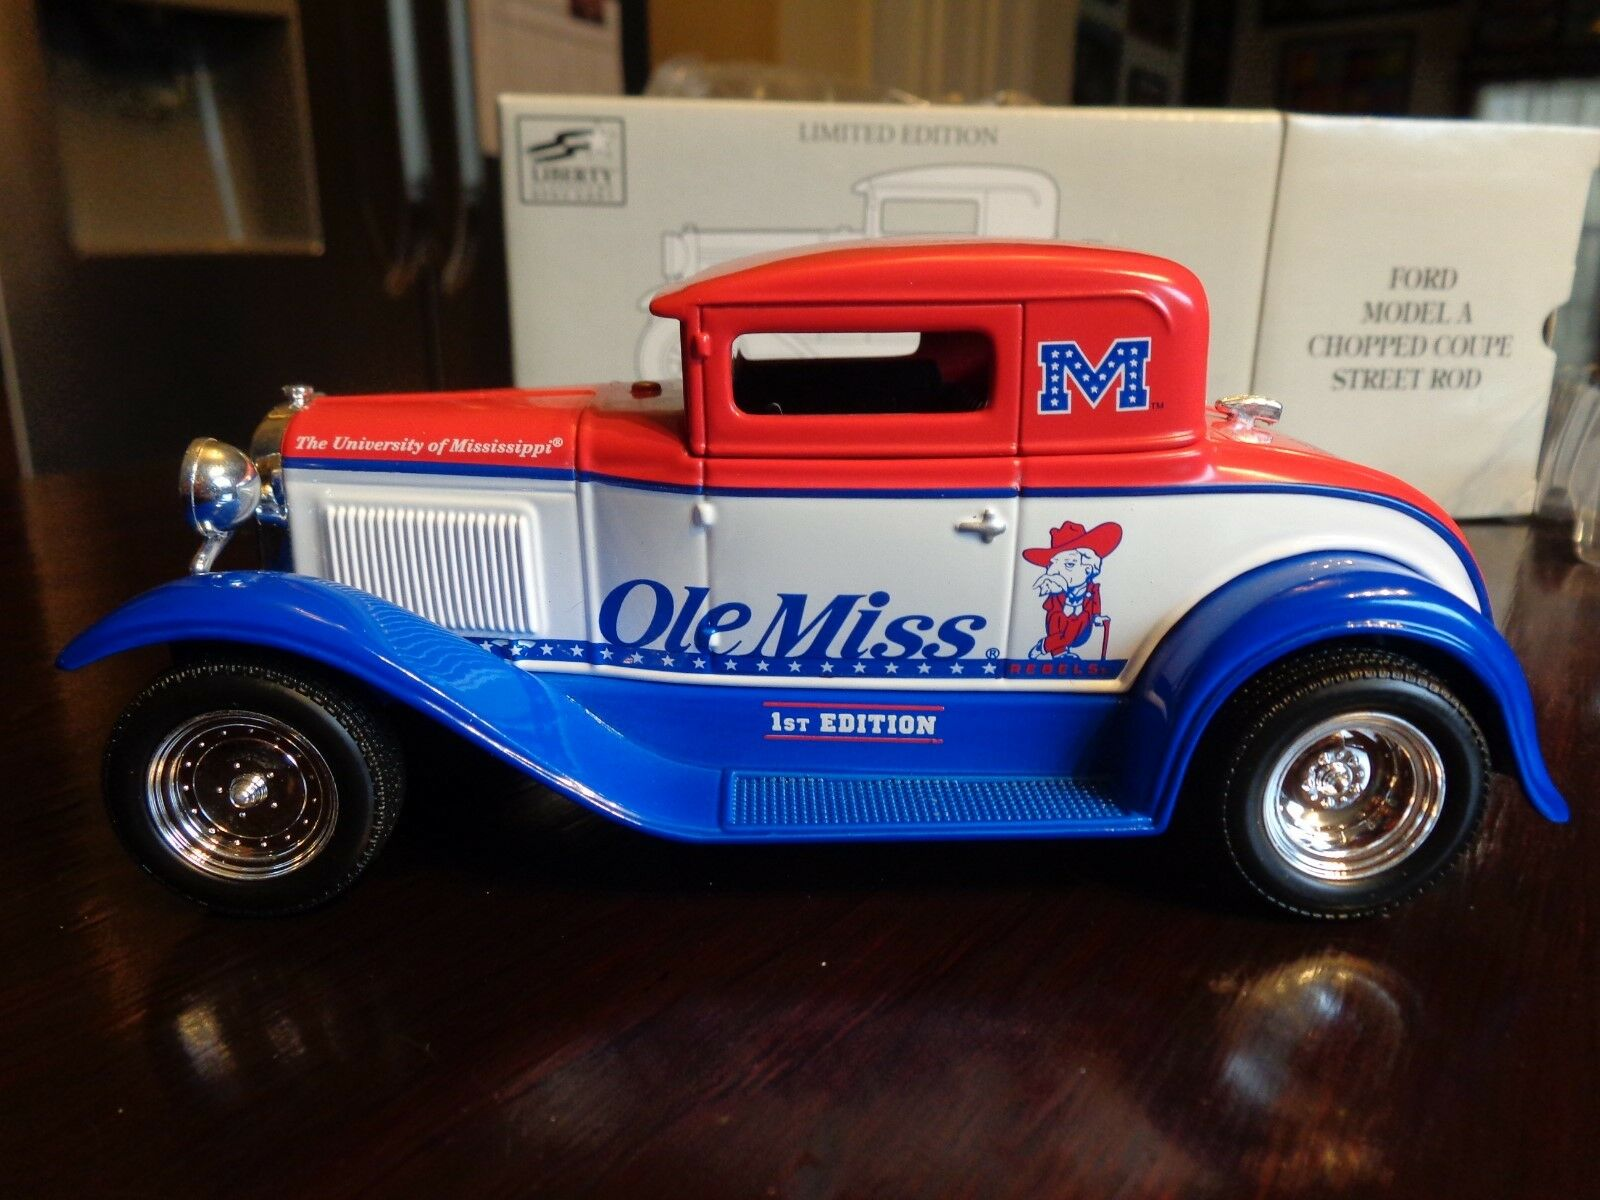 grandes ahorros Modelo A A A Ford picados Coupe Street Rod Ole Miss Mississippi Ltd Ed 1 25 Liberty  ¡no ser extrañado!